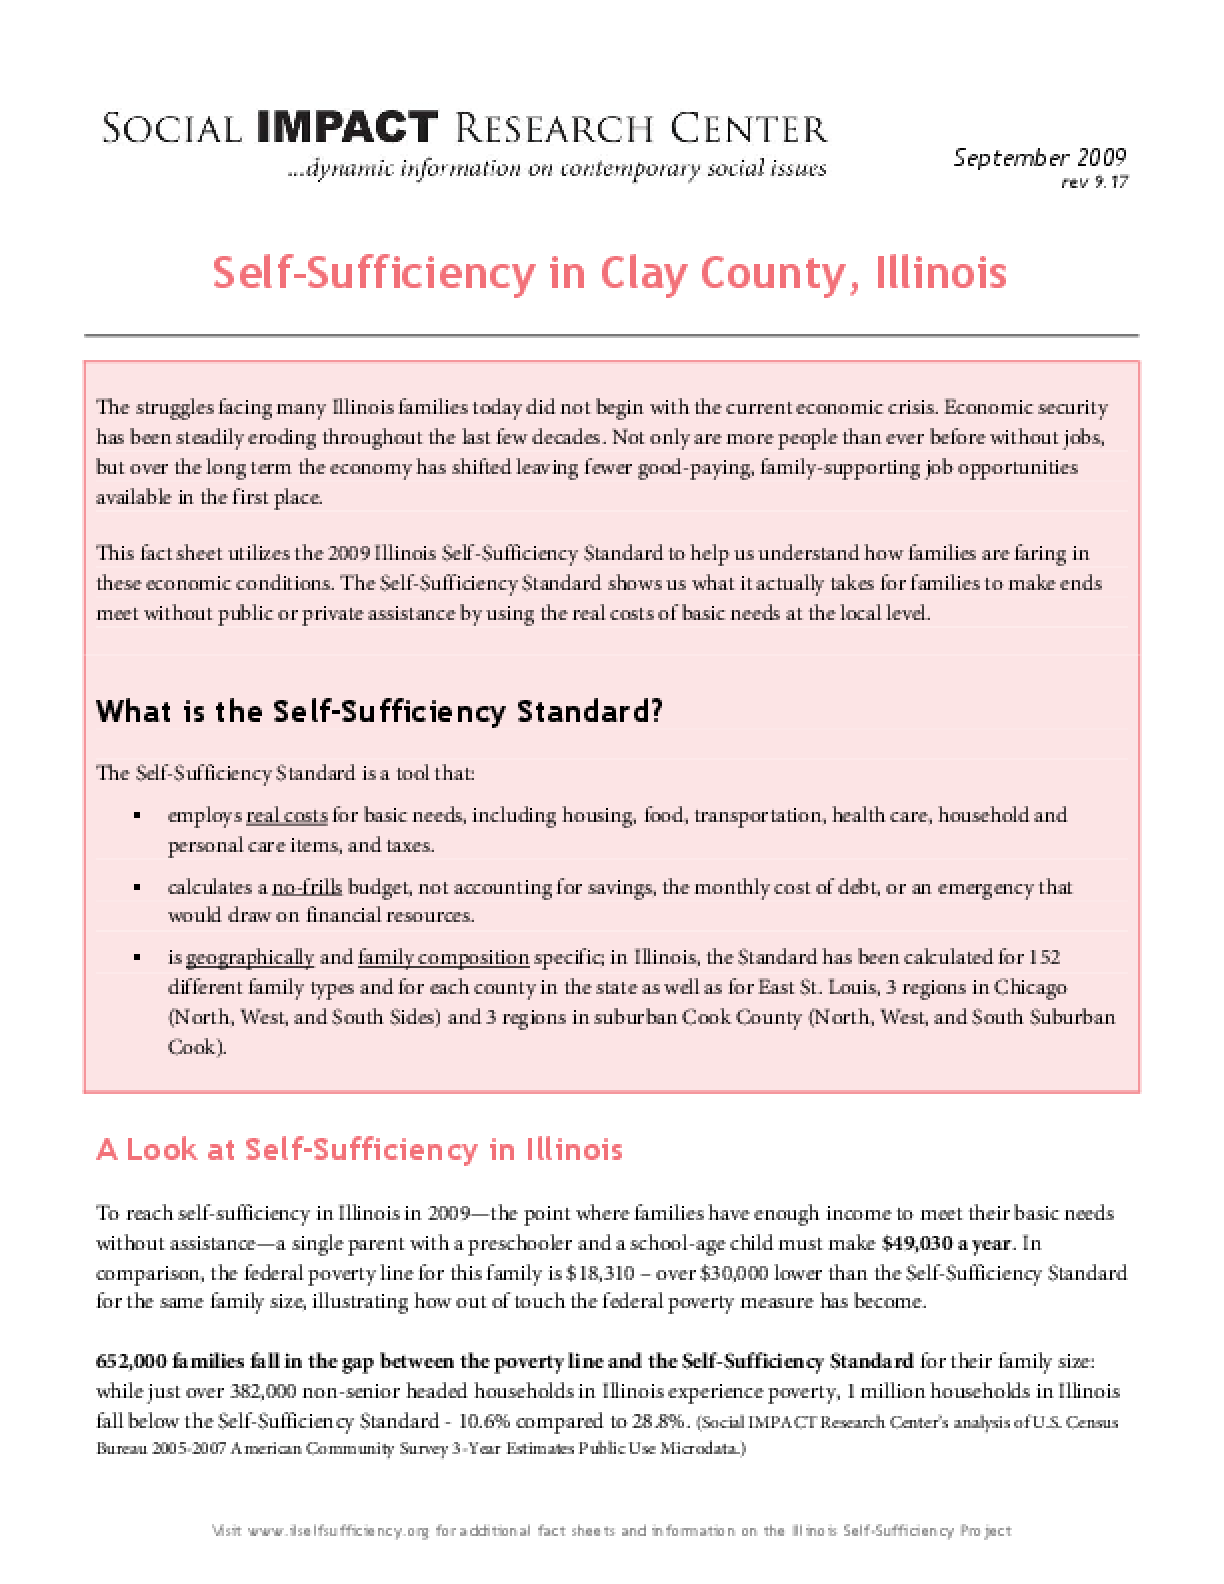 Self-Sufficiency in Clay County, Illinois